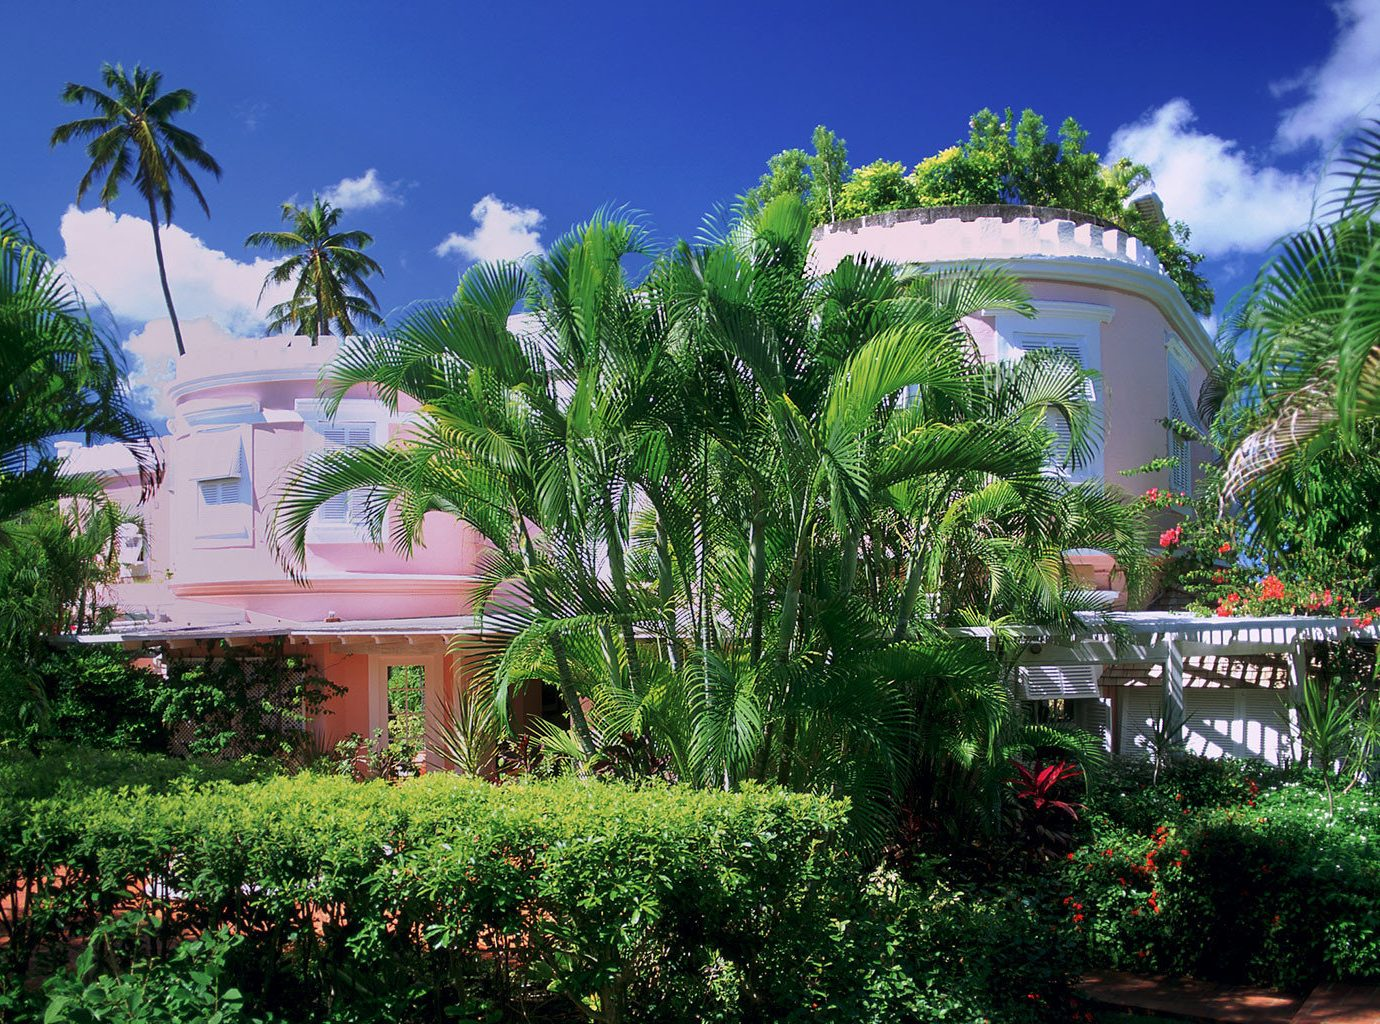 Beach Beachfront Country Elegant Exterior Garden Grounds Island Trip Ideas Waterfront tree outdoor plant Resort botany house estate bushes flower vacation arecales tropics mansion home Jungle botanical garden Villa palm surrounded